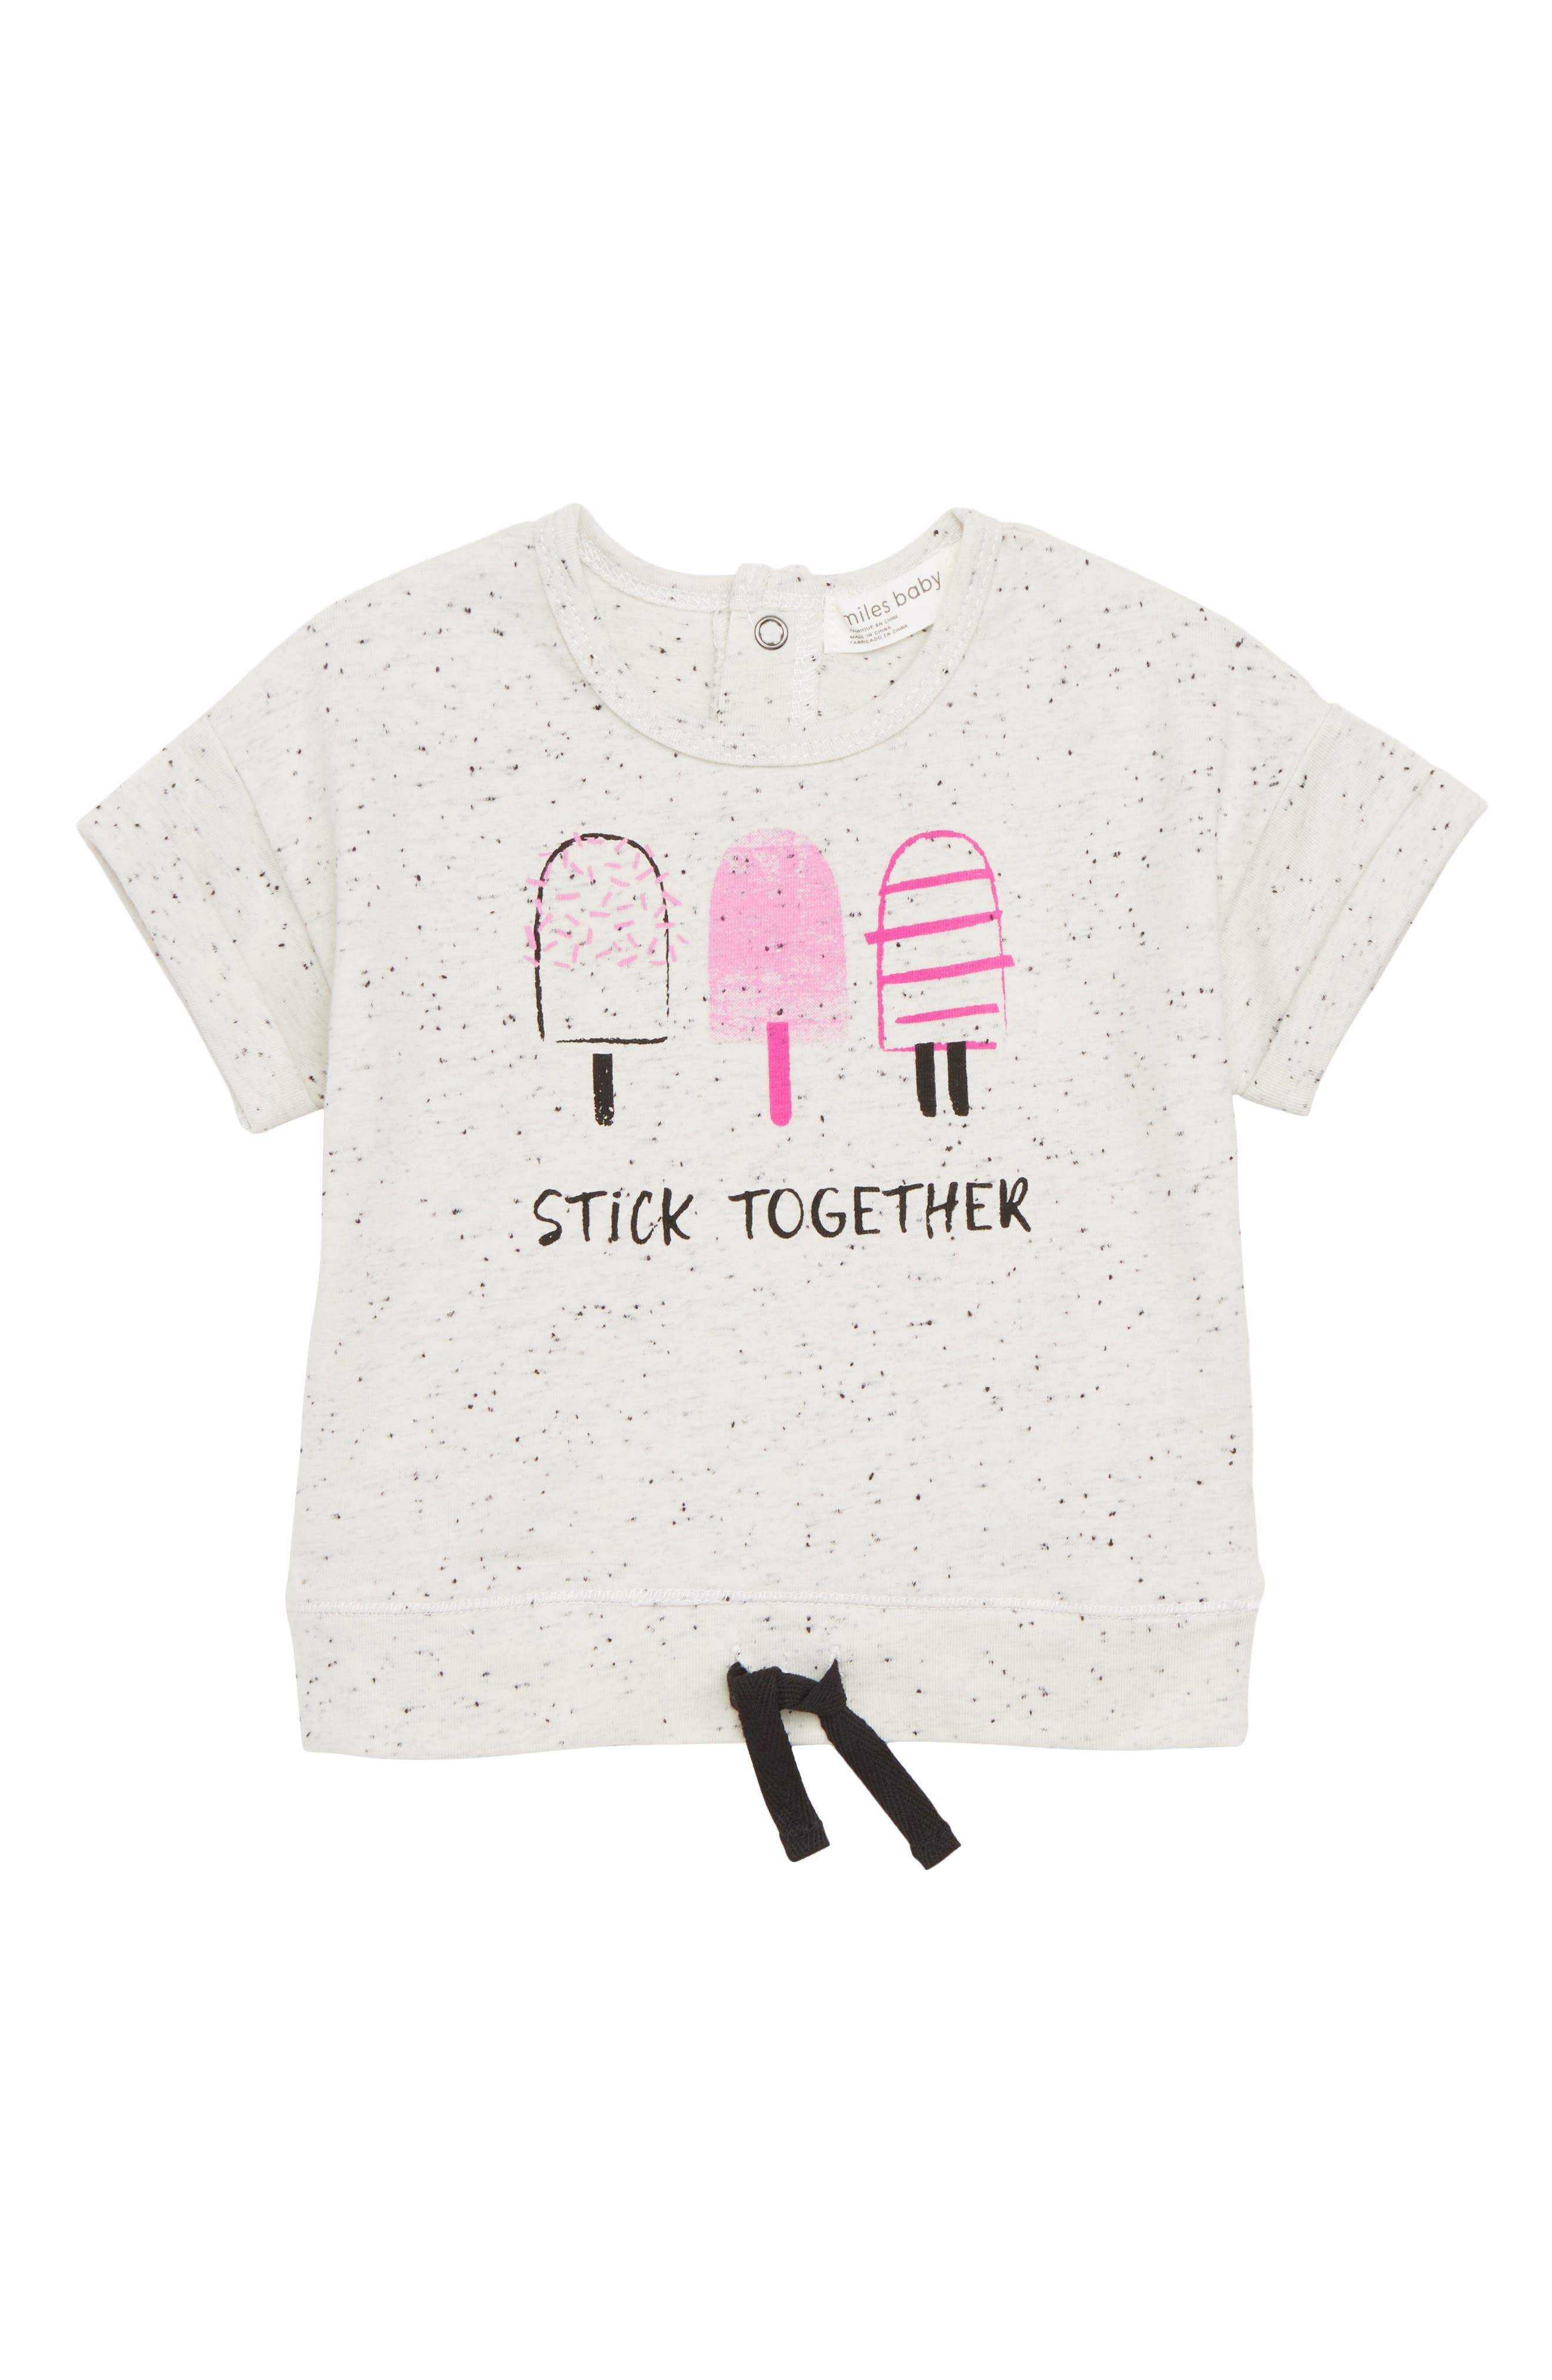 Stick Together Tee,                         Main,                         color, 900